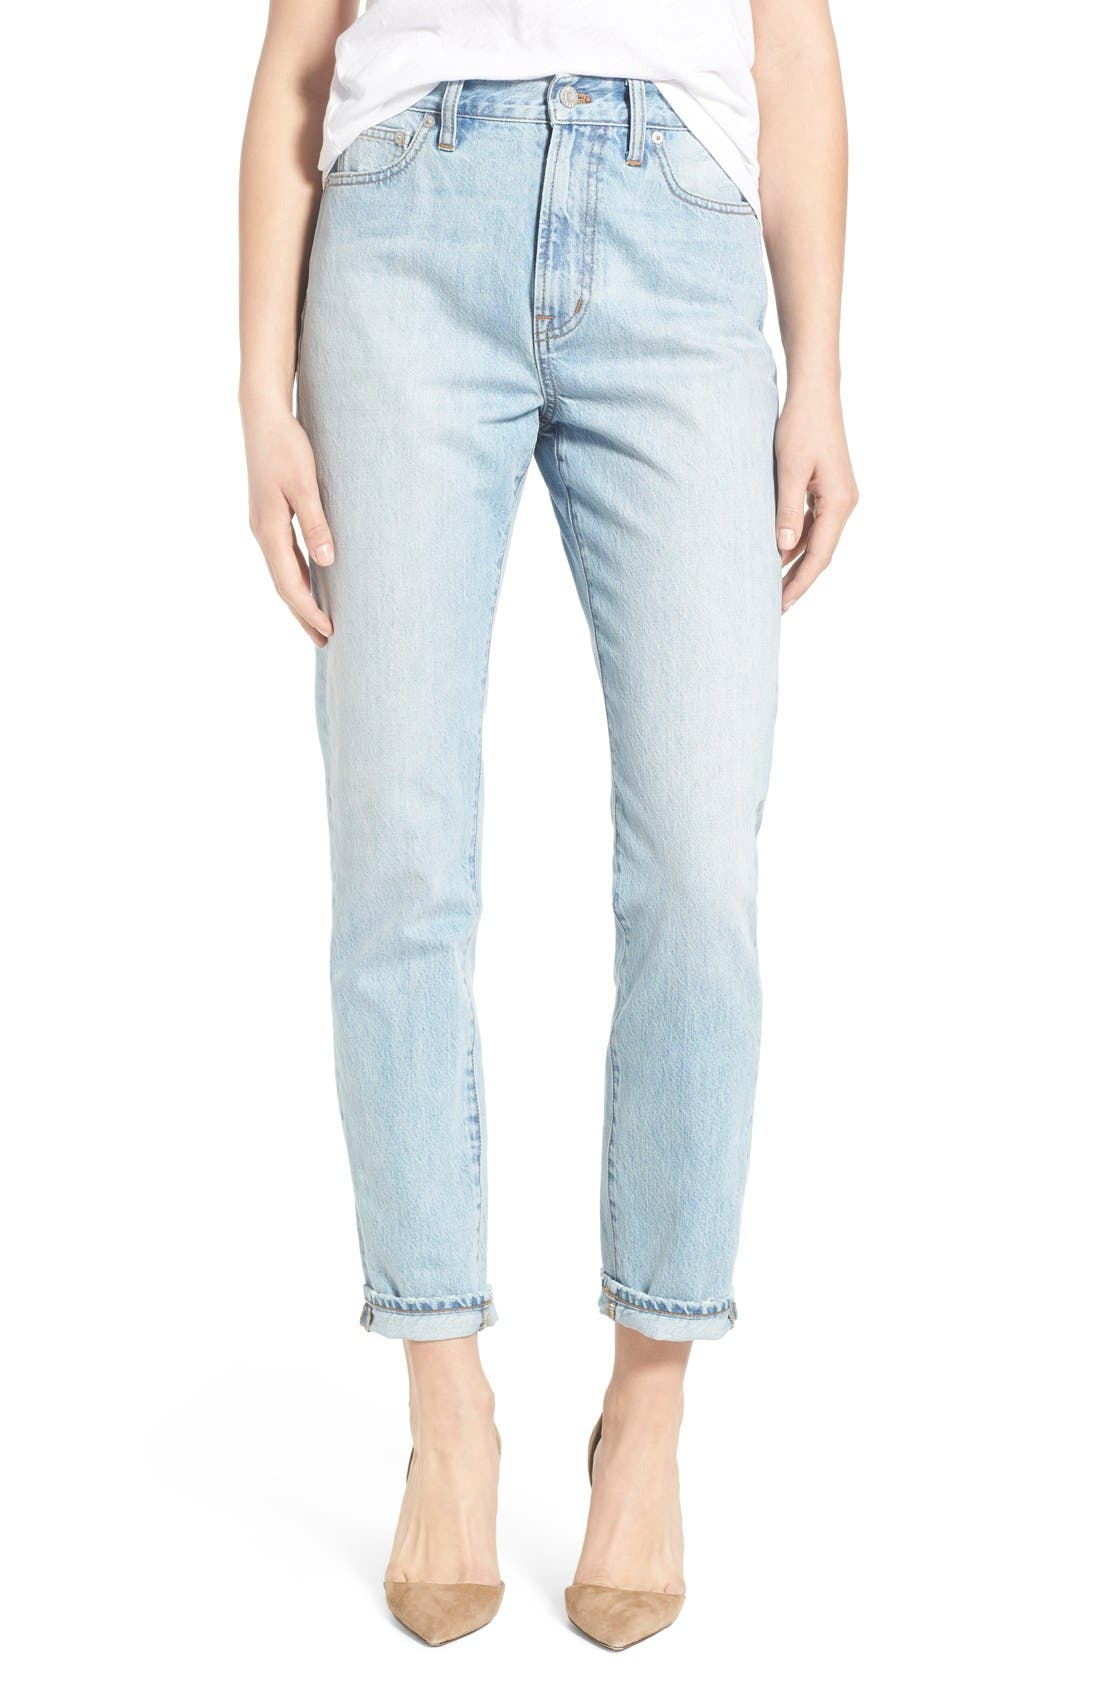 'Perfect Summer' High Rise Ankle Jeans,                             Main thumbnail 1, color,                             Fitzgerald Wash